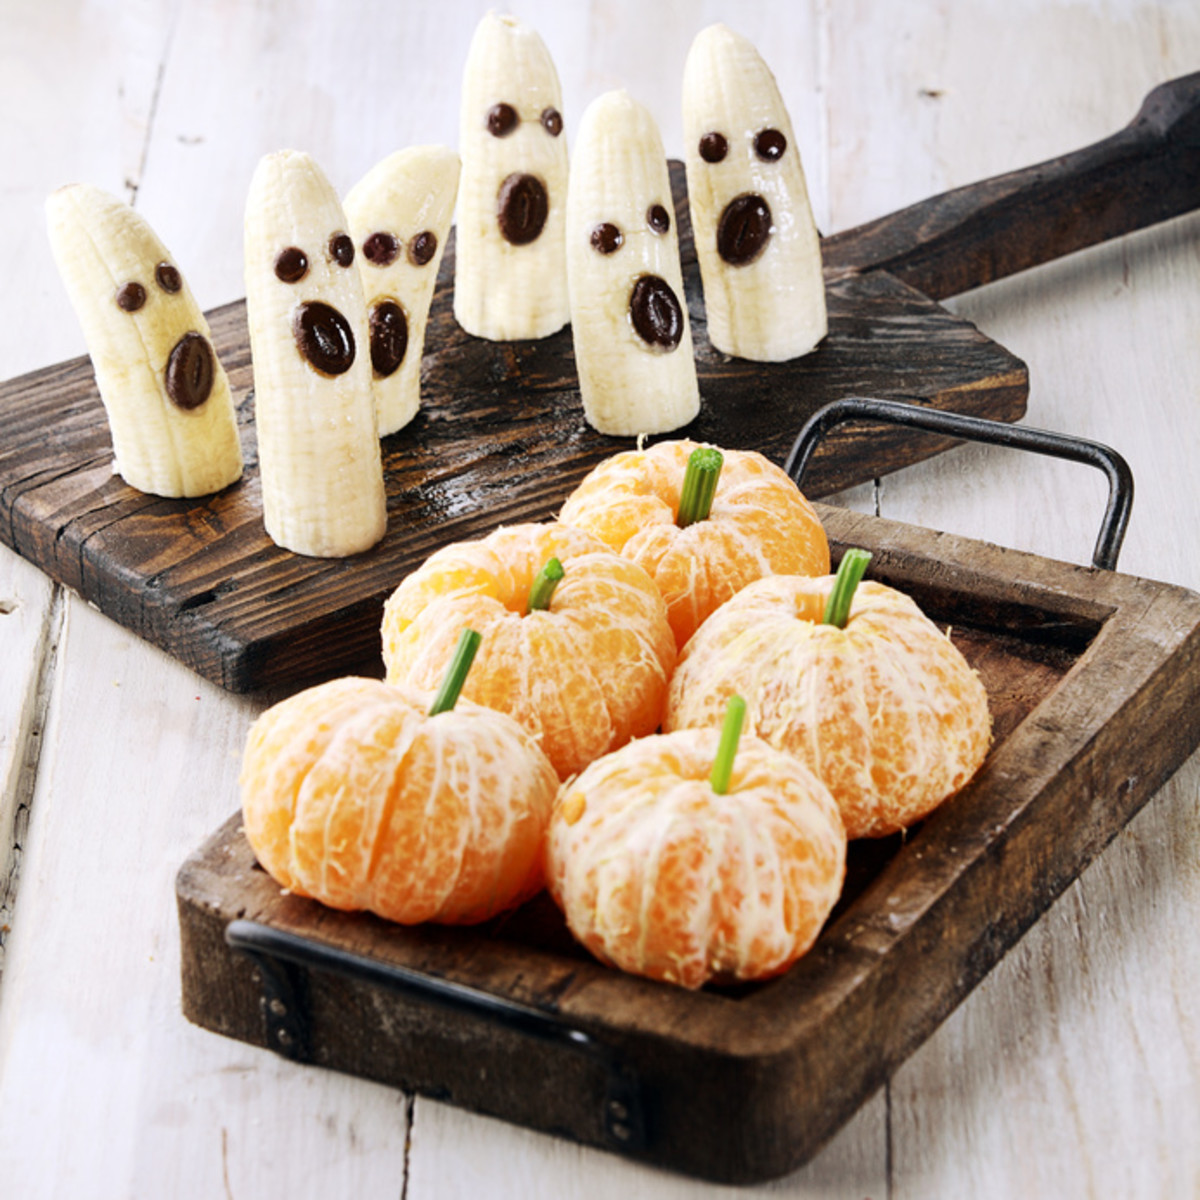 Healthy treats that will divert the kids' attention away from all that Halloween candy.